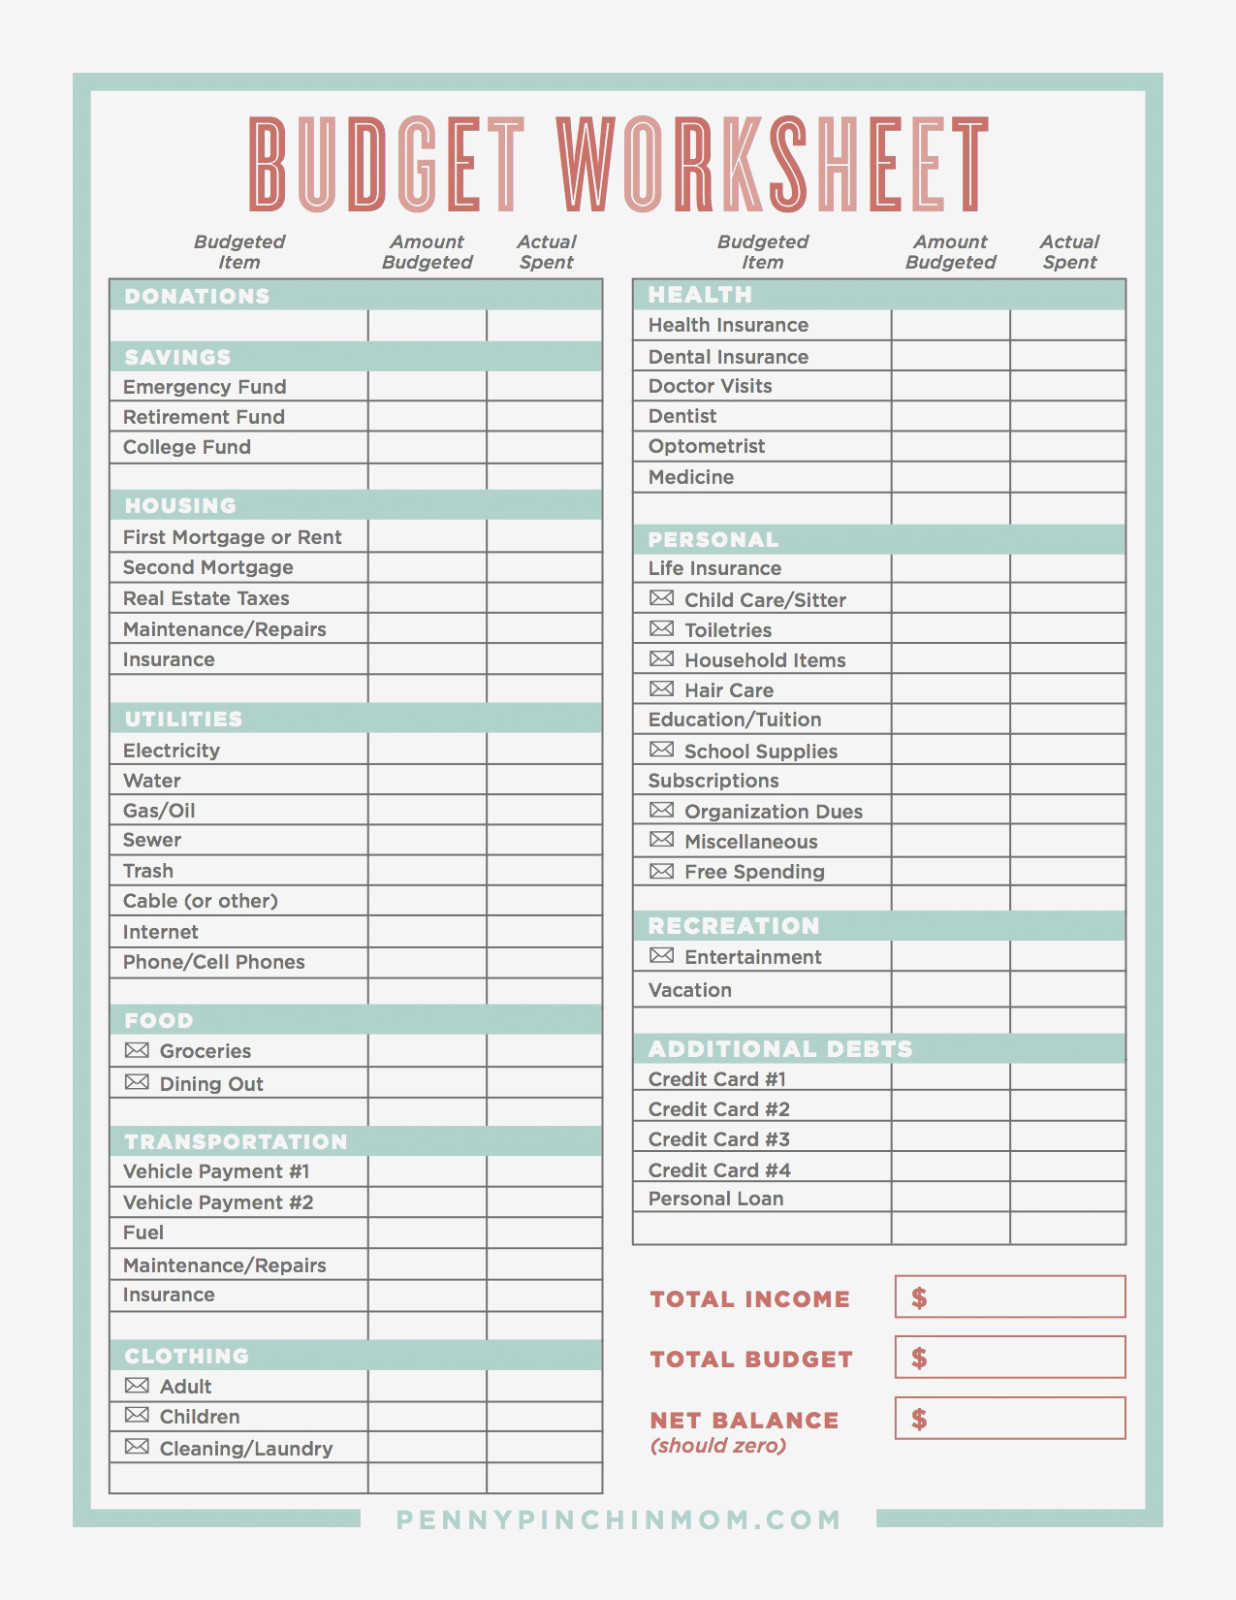 Free Printable Budget Worksheets Dave Ramsey Unique Bud Worksheet | Free Printable Budget Worksheets